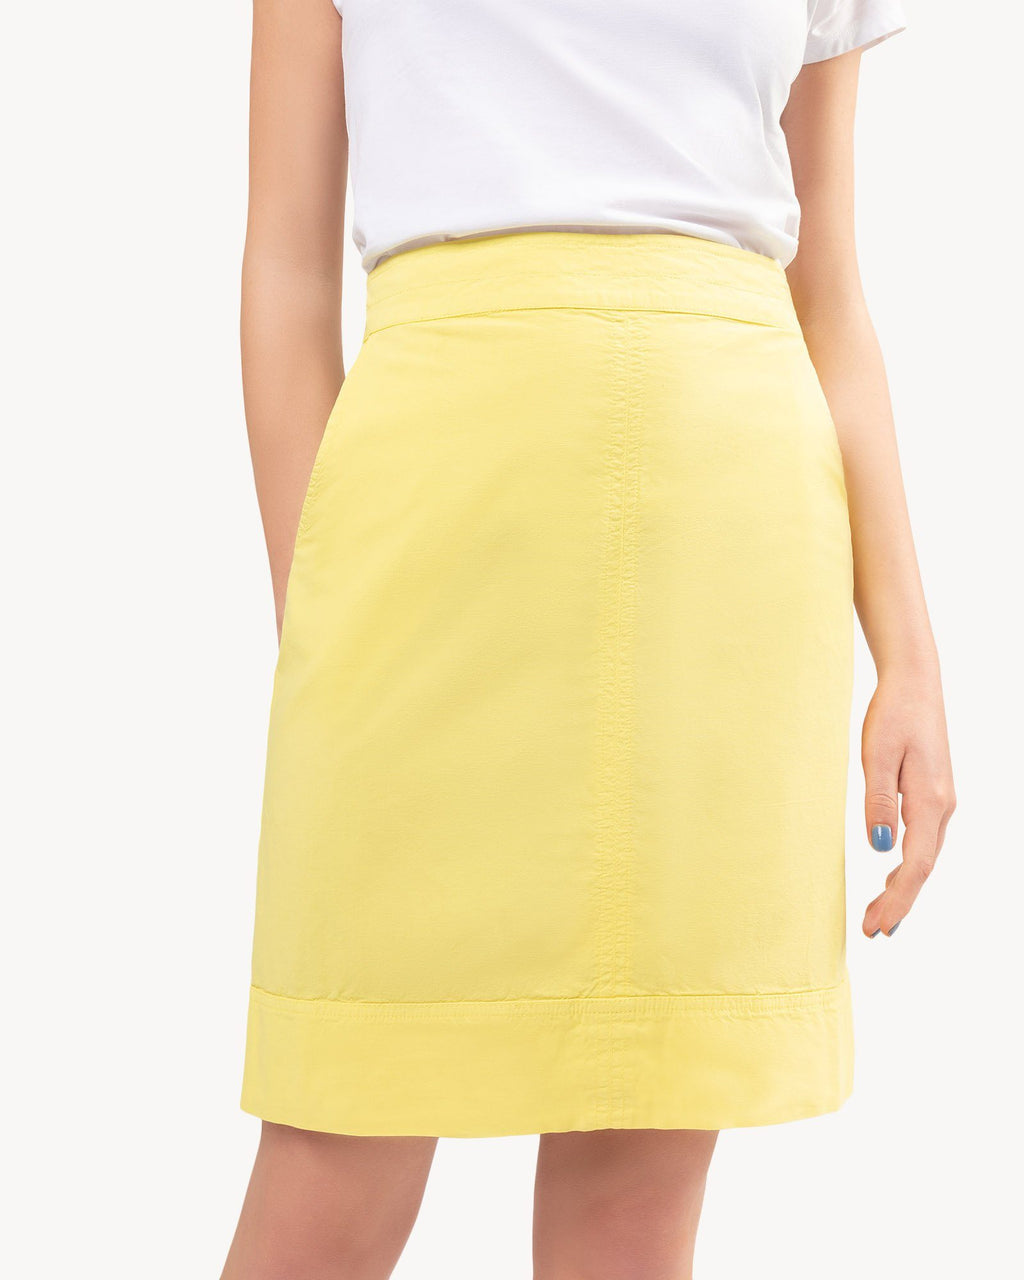 variant_1 | EN Skirt Yellow Women Madness | DE Rock Gelb Damen Madness